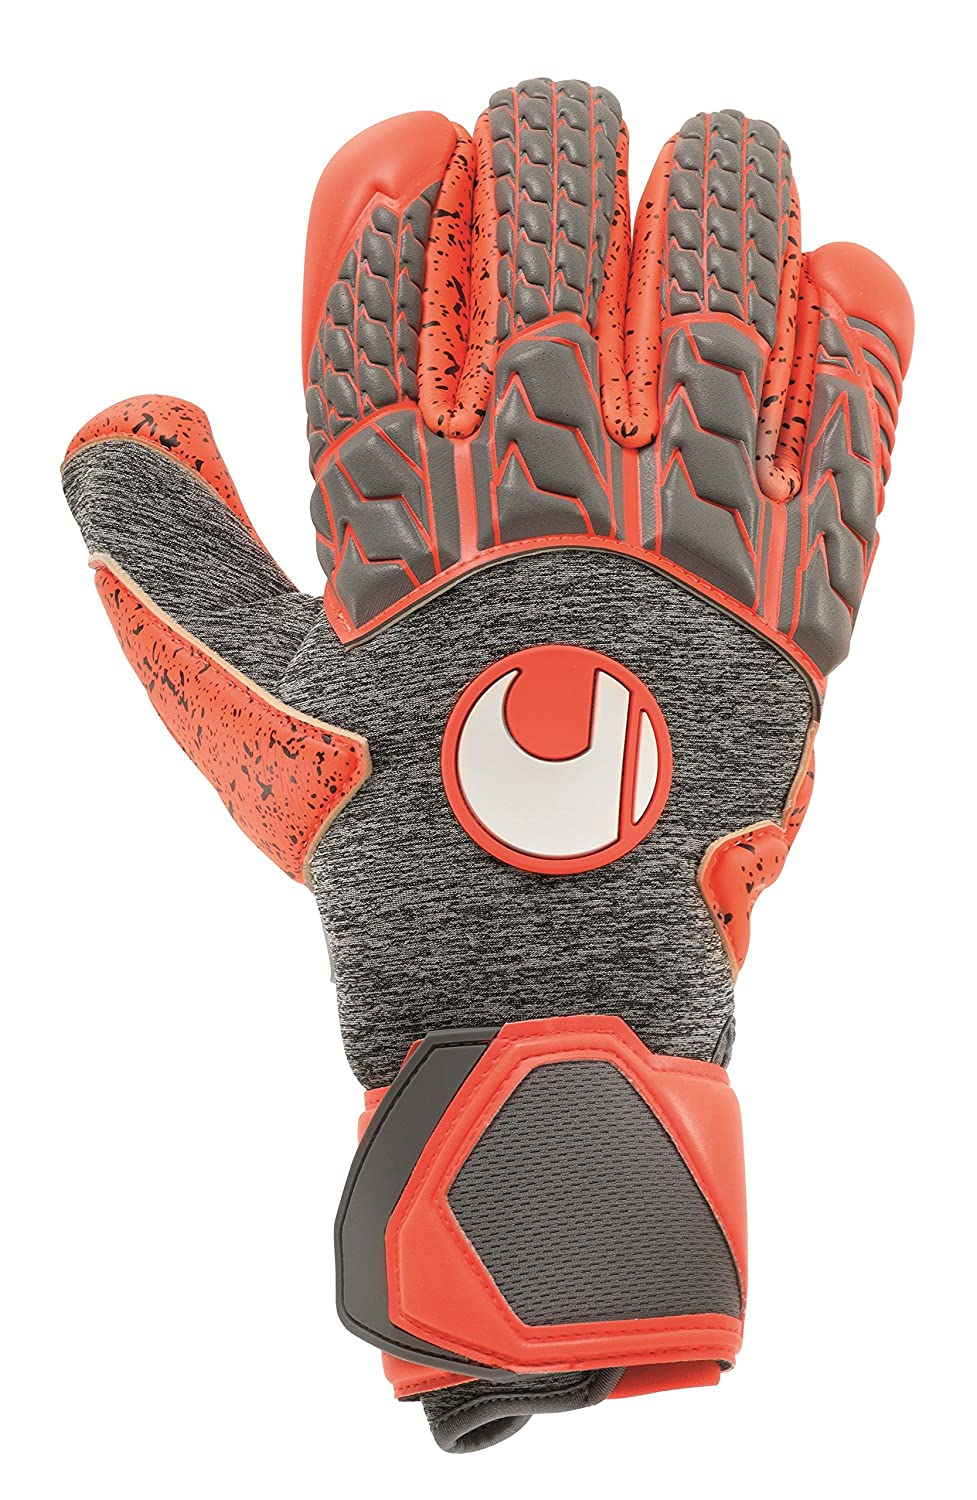 Uhlsport AeroROT Supergrip Finger Surround Torwarthandschuhe